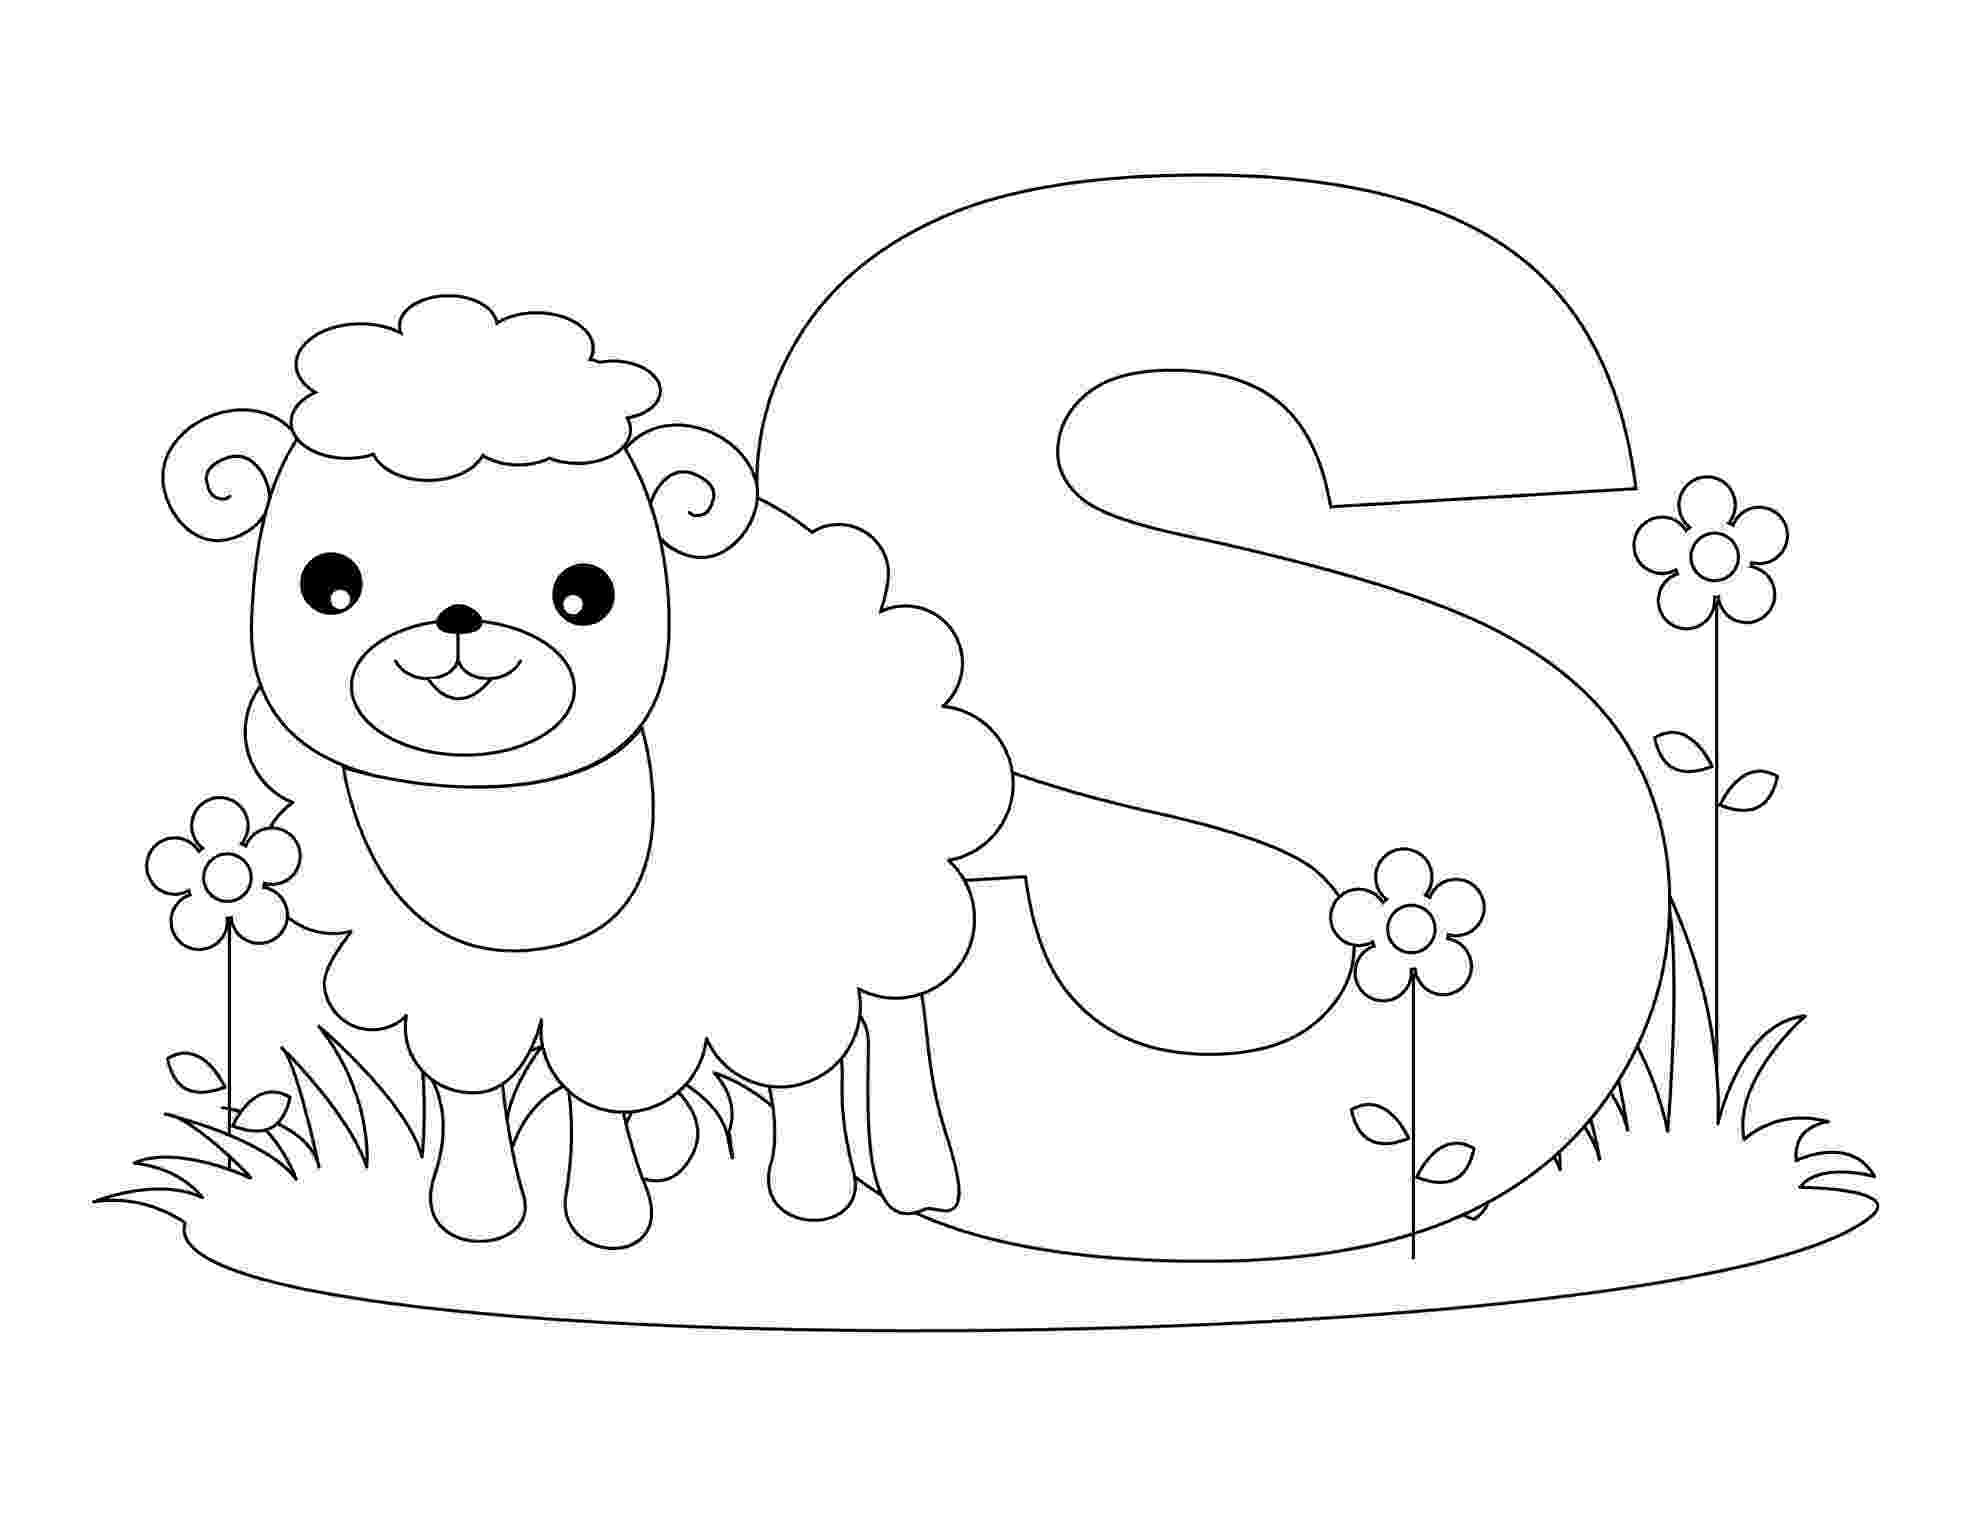 abc coloring book printable free printable alphabet coloring pages for kids best book printable coloring abc